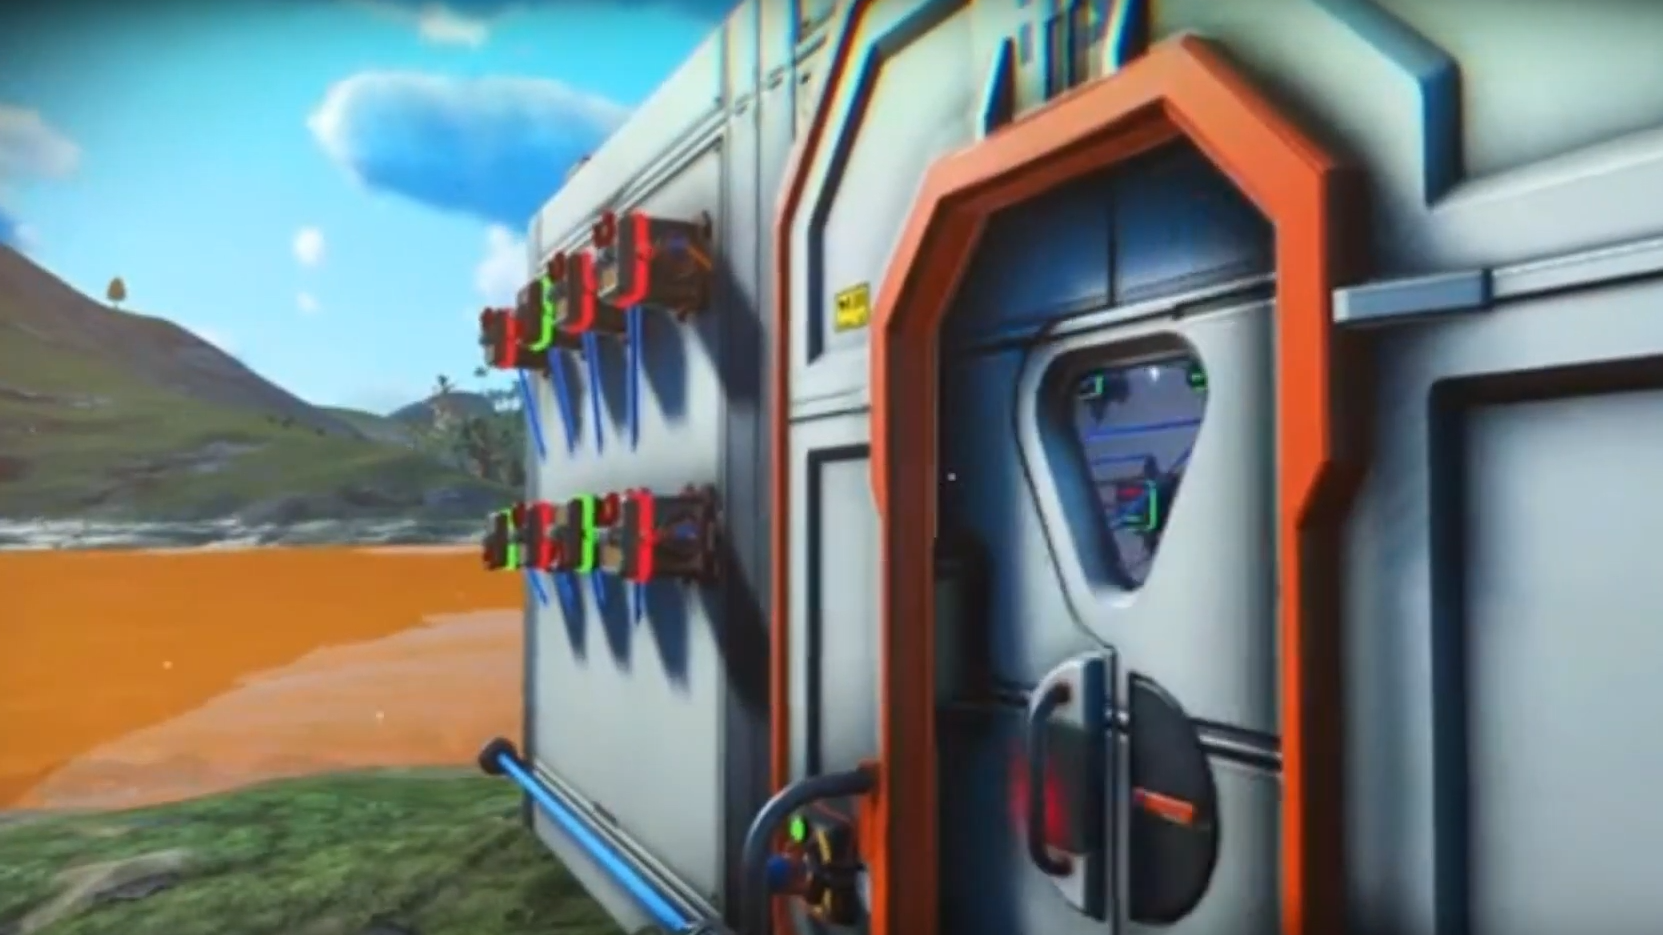 No Man's Sky Player Builds Combination Lock